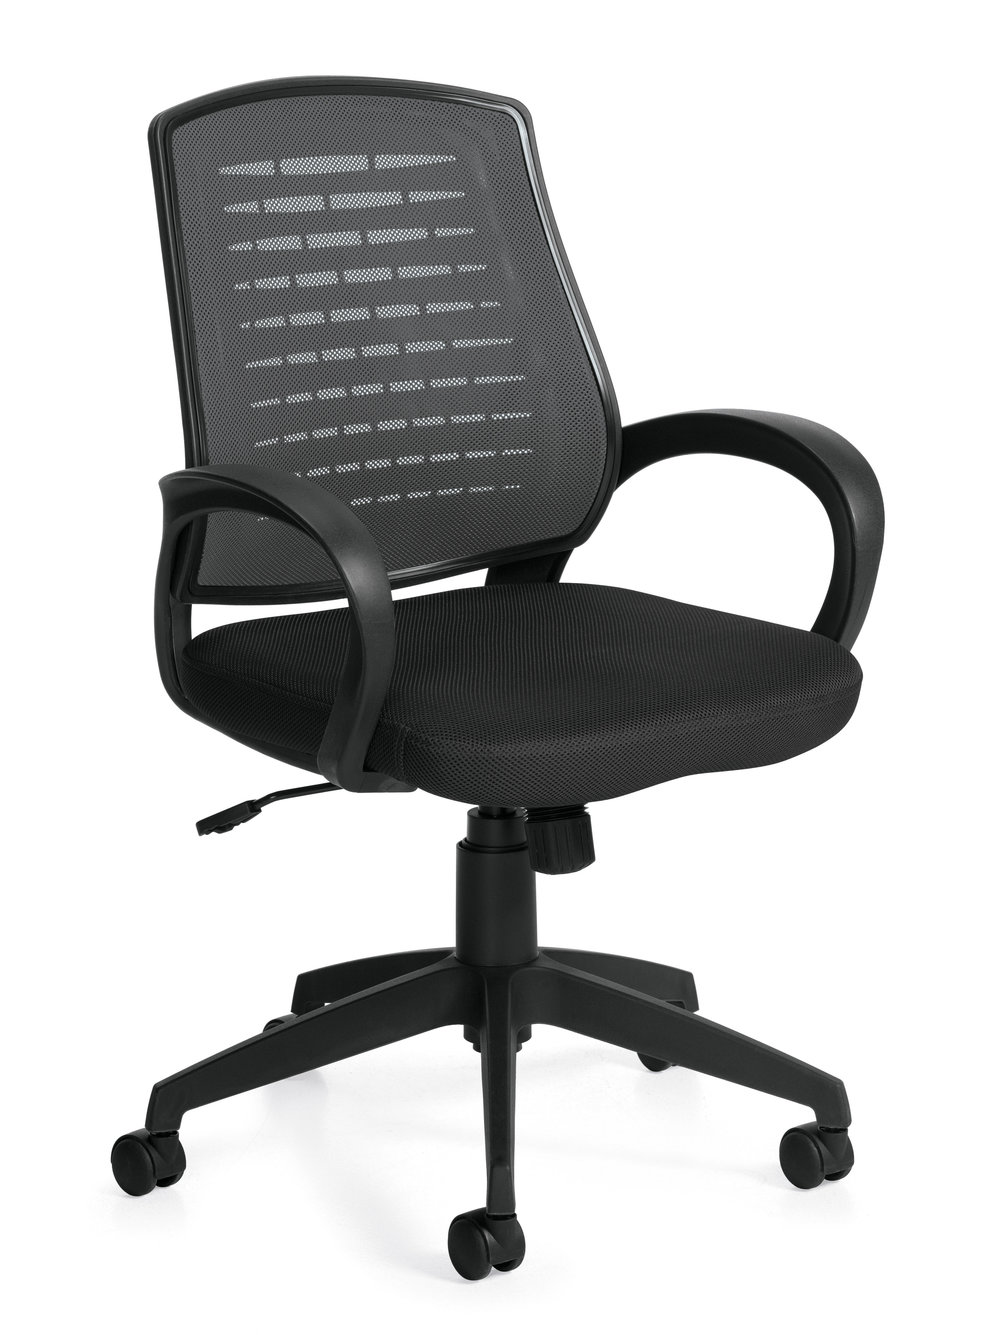 OTG10902B Mesh Back Manager's Chair